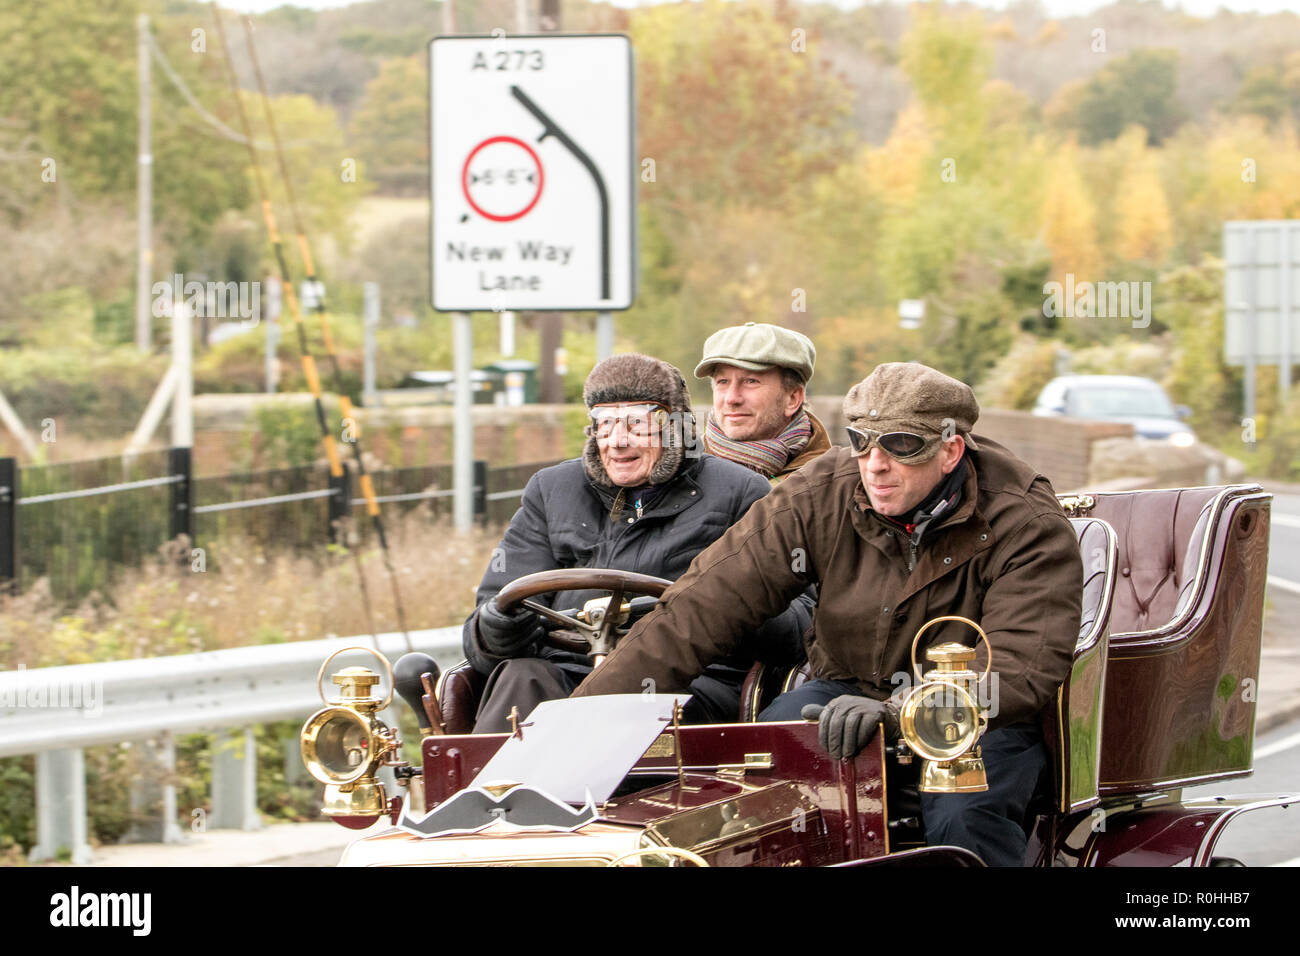 """Pyecombe, East Sussex, UK. 4th November 2018. Christian Horner of Red Bull racing with Lord Laidlaw in the Lords 1904 Panhard-Levassor as they join owners and drivers take for the 79th  """"Bonham's"""" London to Brighton Veteran car run. The 60 mile route, starting in Hyde Park London concludes at Madeira Drive Brighton. The vehicles in this year annual event, including an 1895 Peugeot and an 1898 Panhard et Levassor were all built between 1893 and 1905. Stock Photo"""